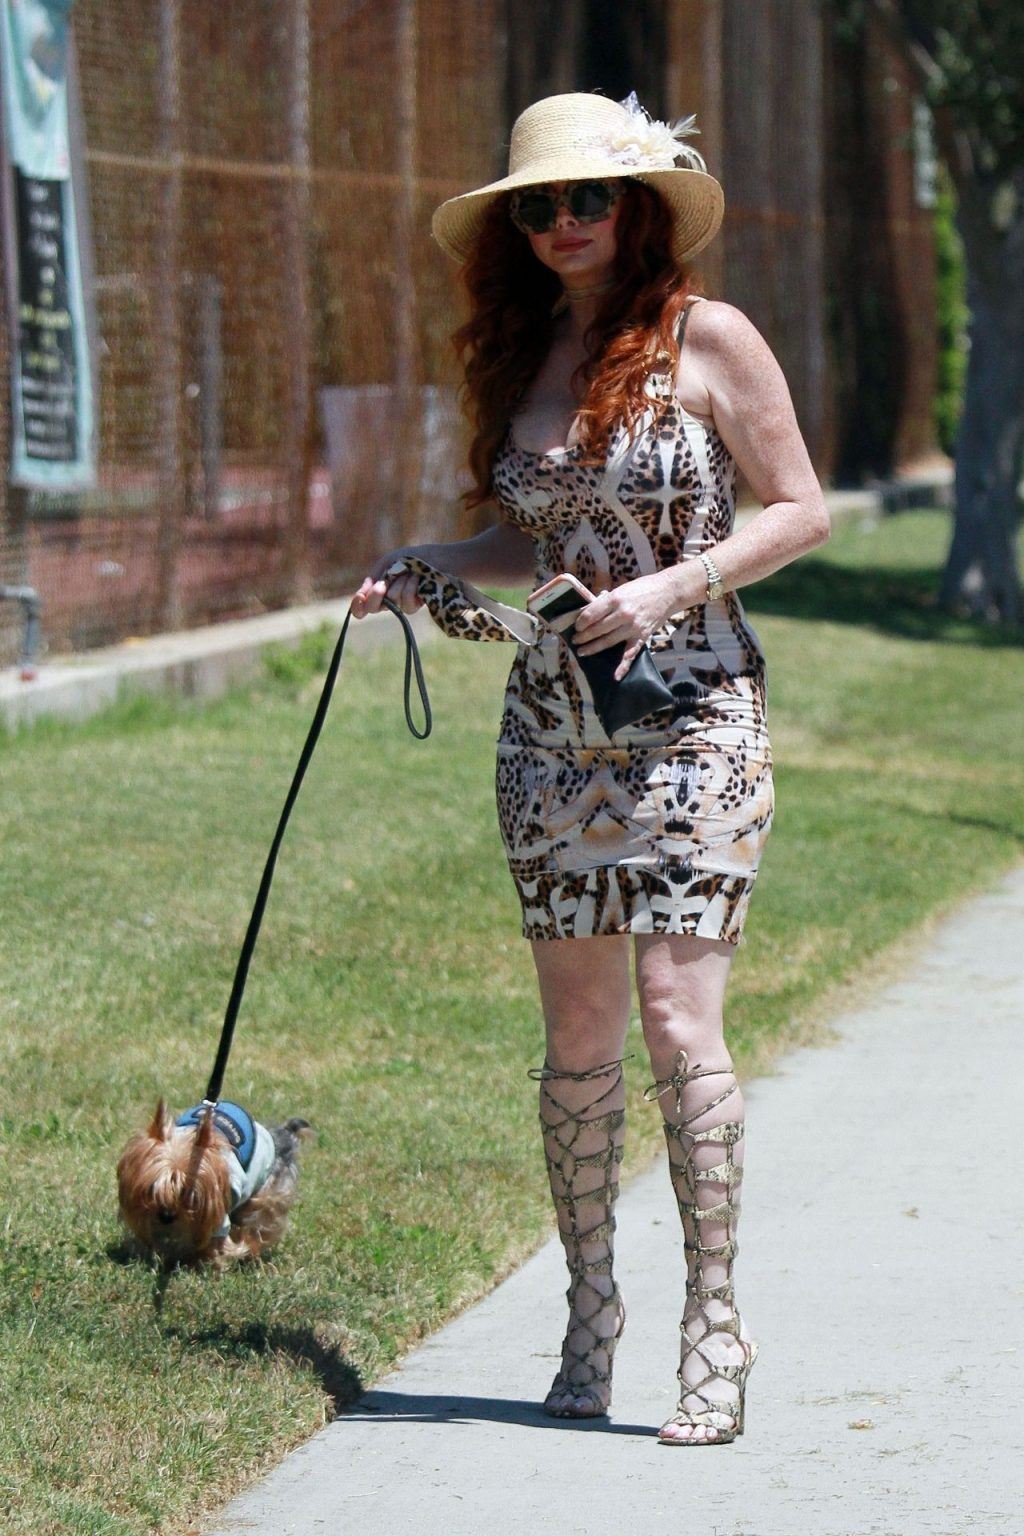 Phoebe Price Takes Her Pooch for a Walk in a Park (36 Photos)